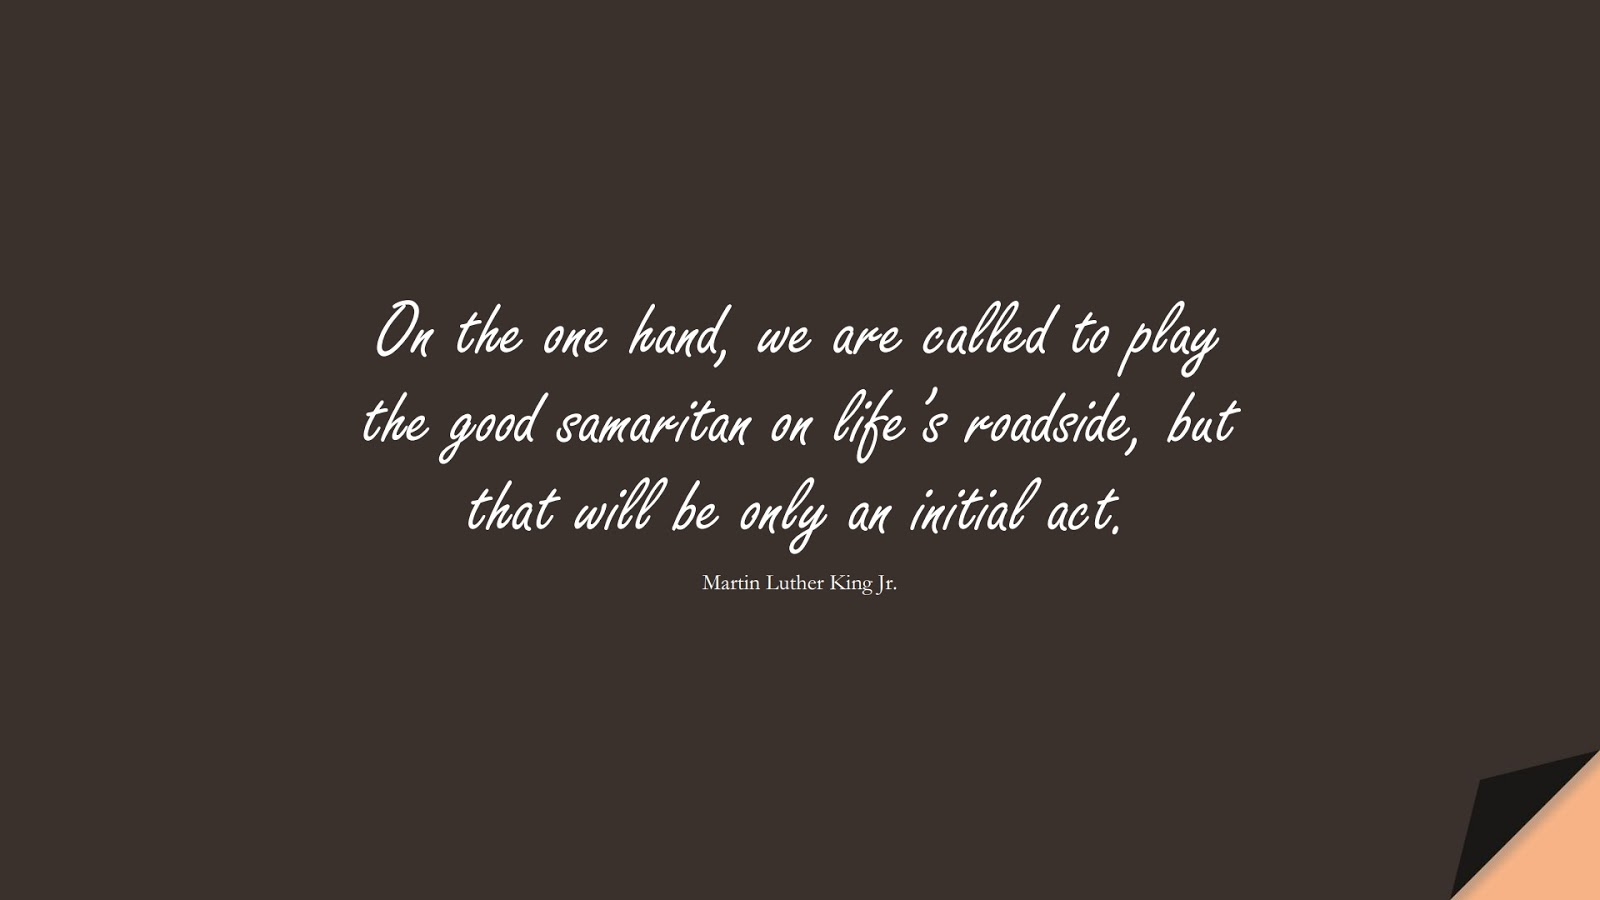 On the one hand, we are called to play the good samaritan on life's roadside, but that will be only an initial act. (Martin Luther King Jr.);  #MartinLutherKingJrQuotes